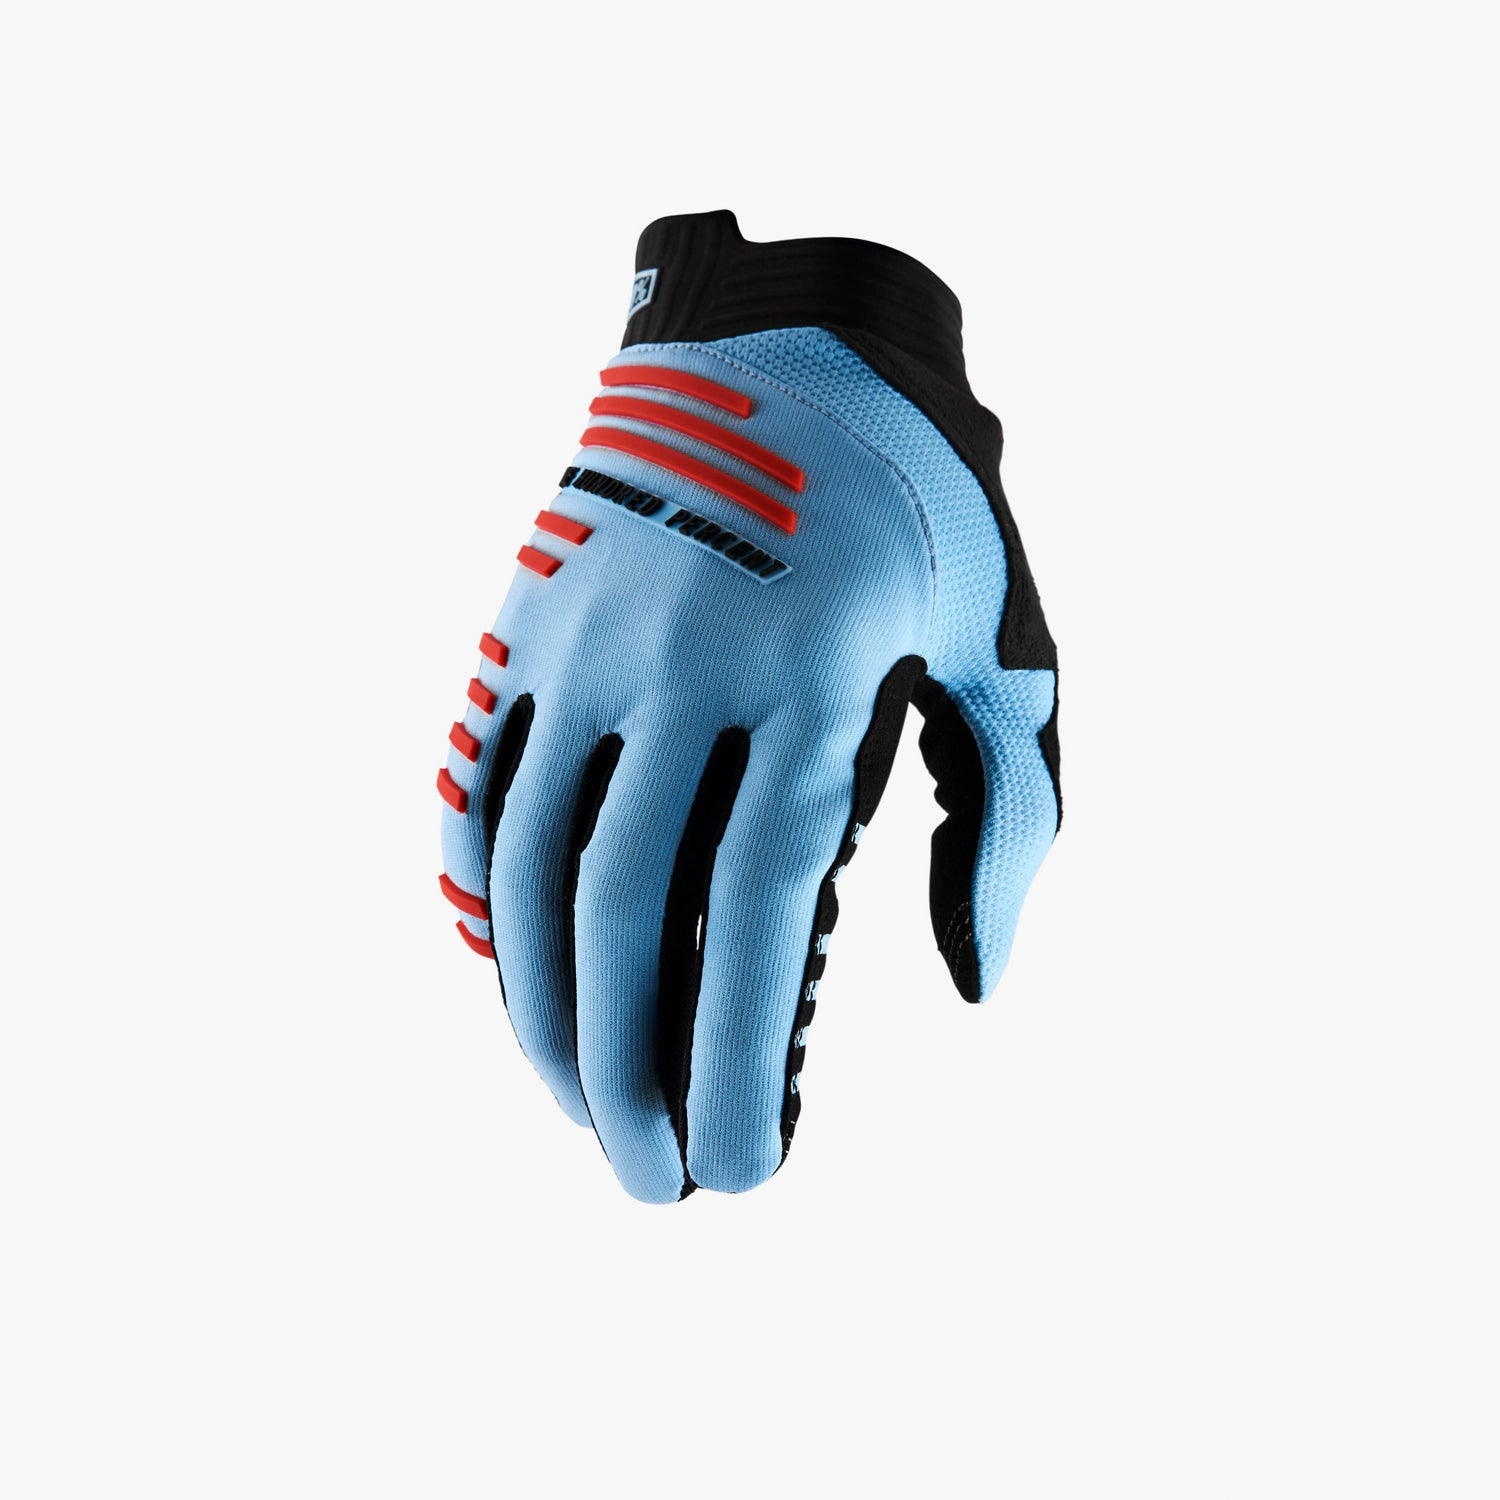 R-CORE Gloves Light Blue/Fluo Red